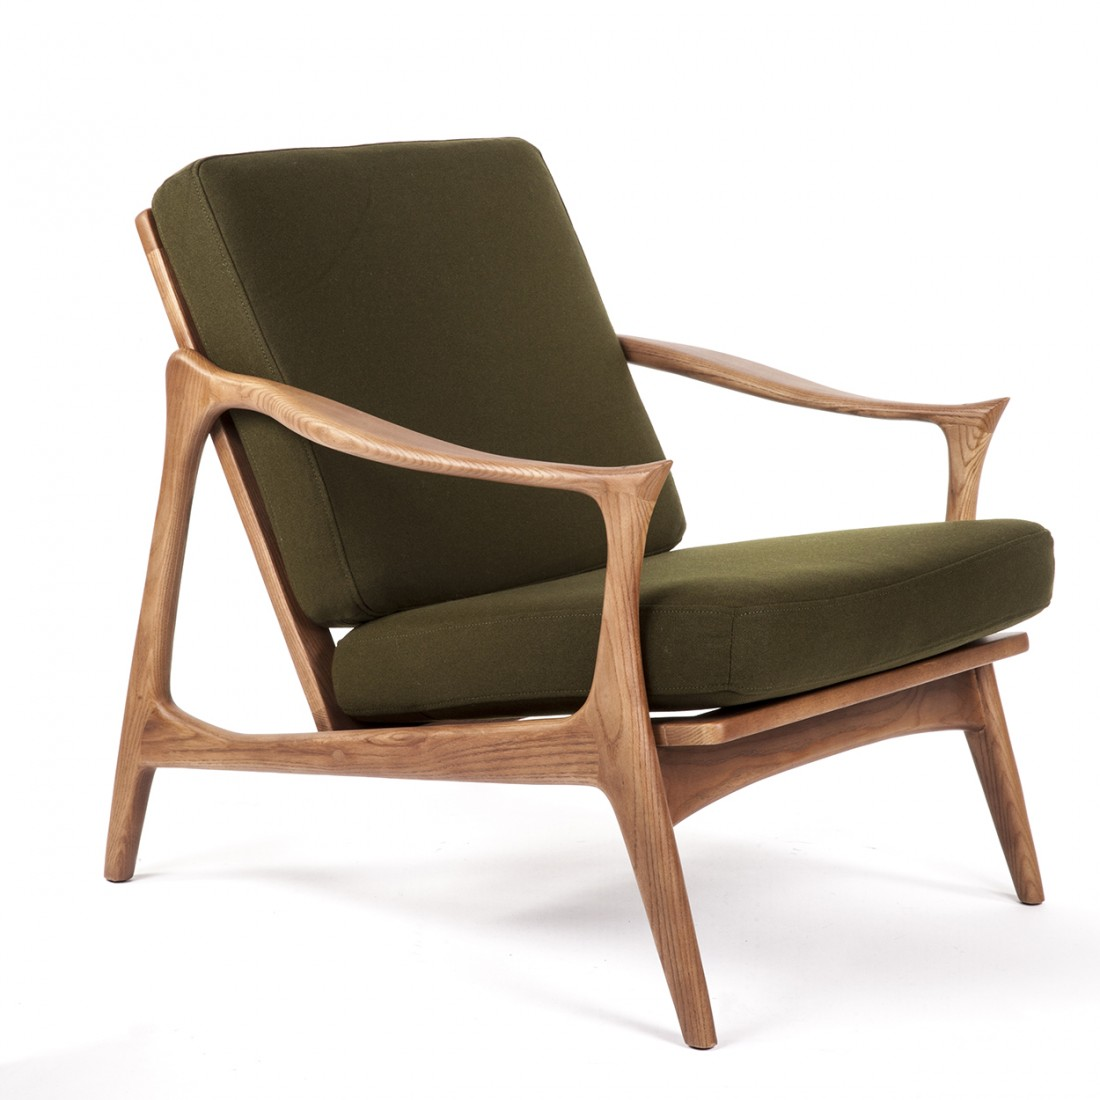 Image of: Luxury Mid Century Lounge Chair